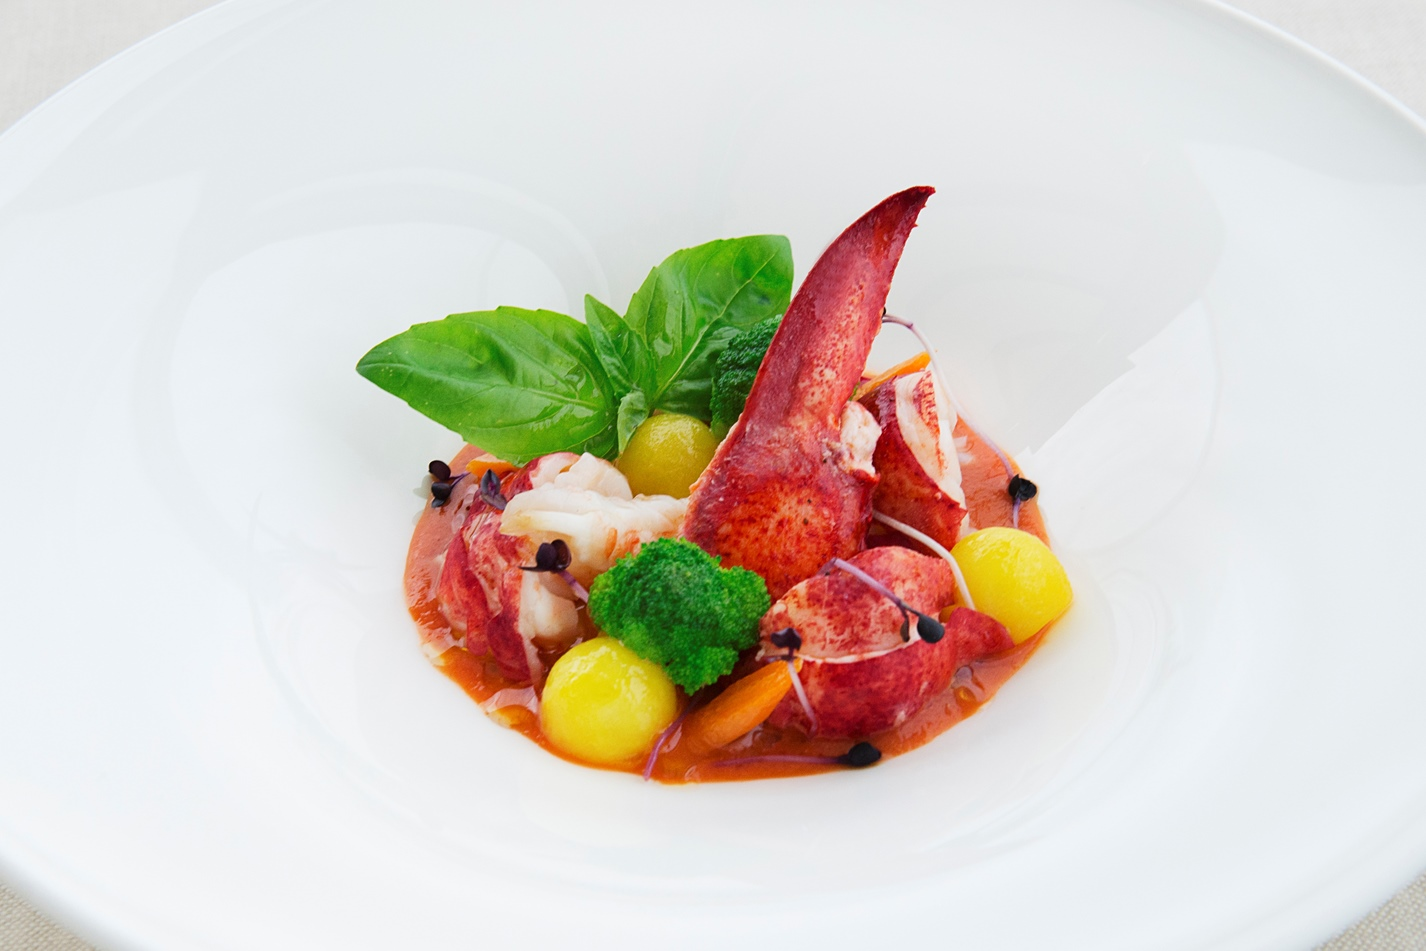 Great italian chefs recipes from italys best chefs inspiring food lovers everywhere forumfinder Choice Image